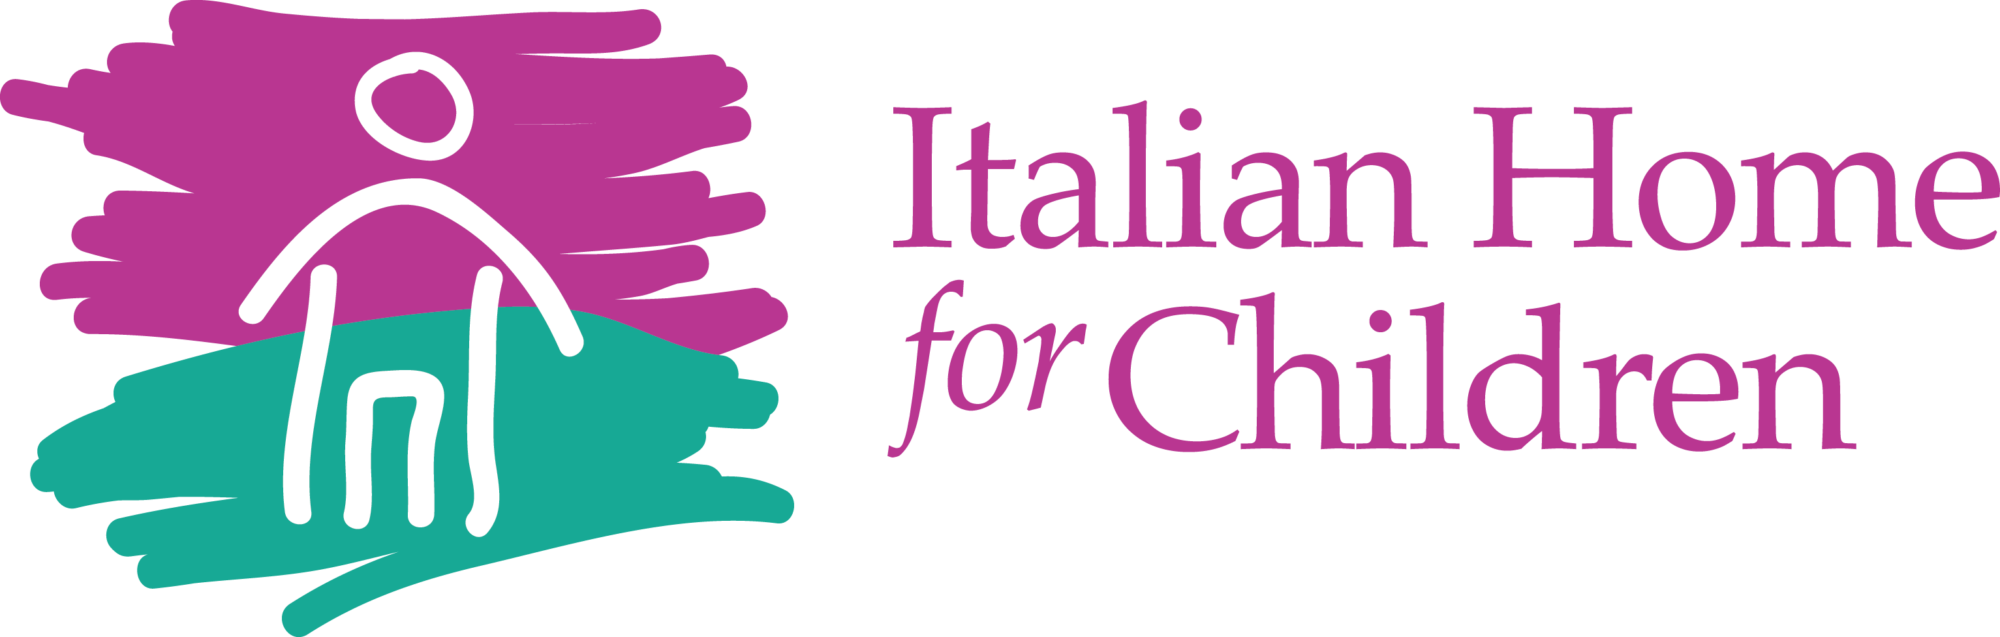 Italian Home for Children